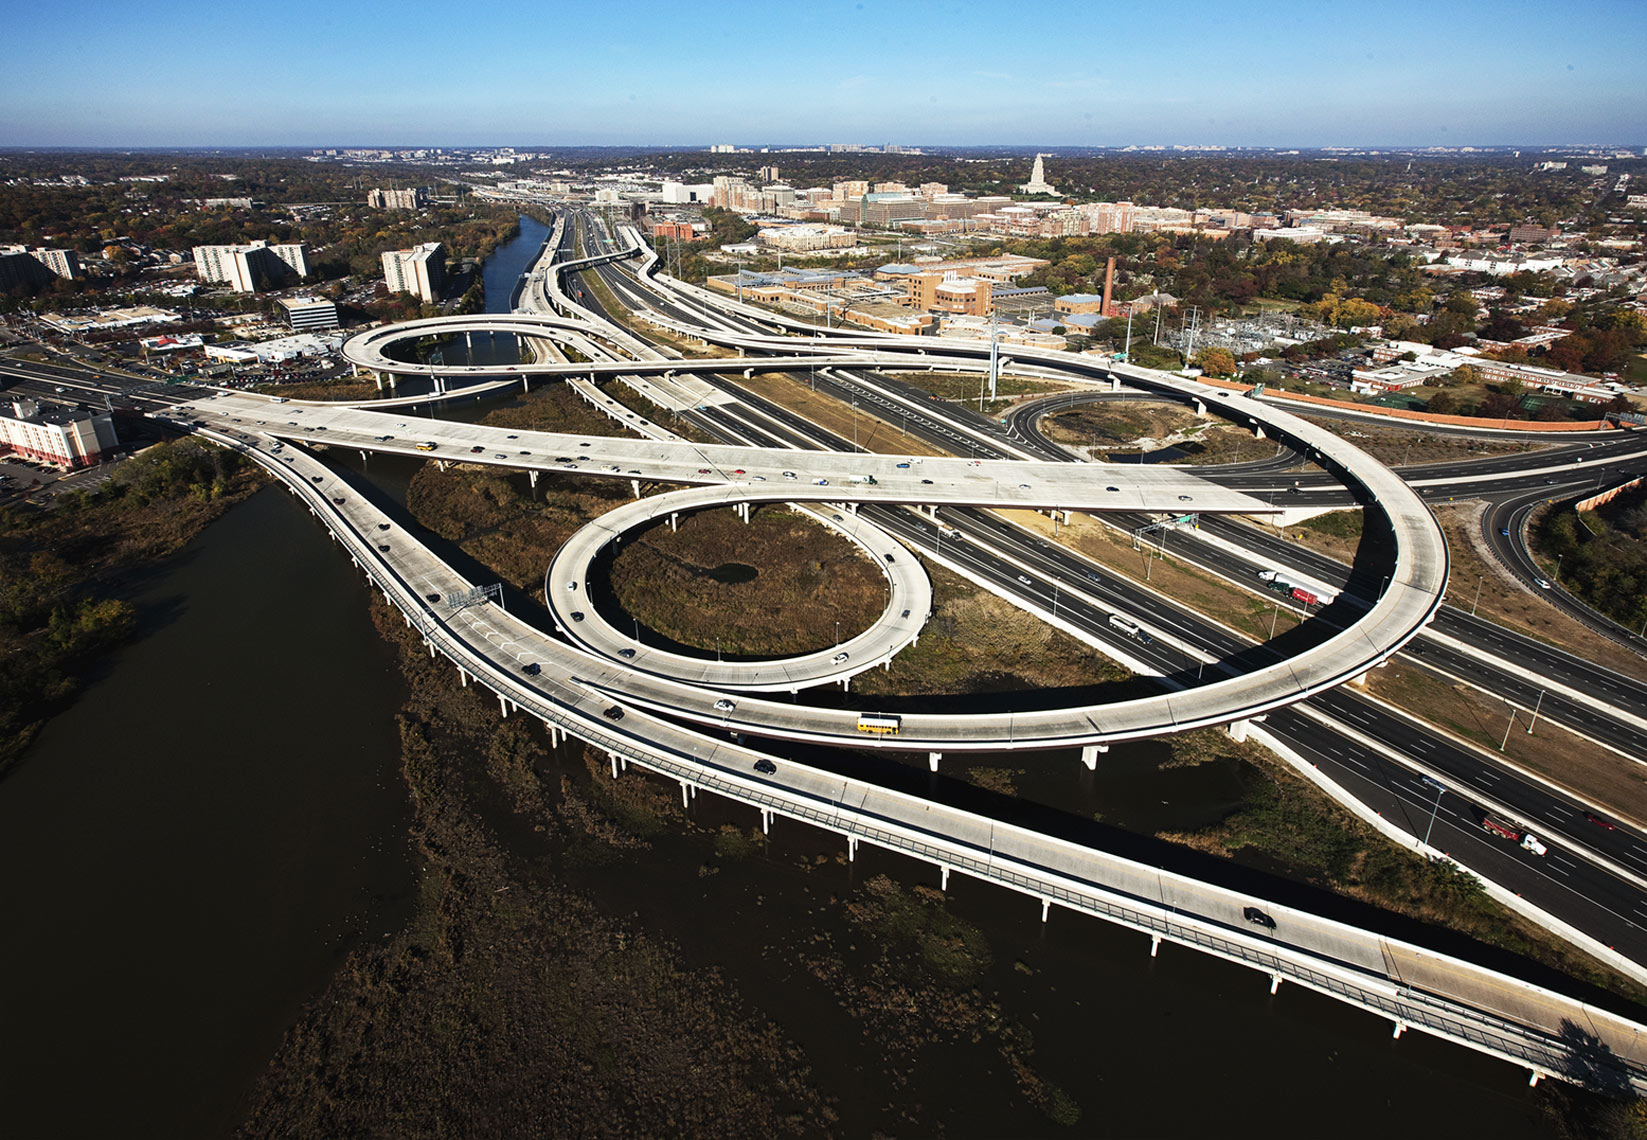 aerial photograph of highway interchange